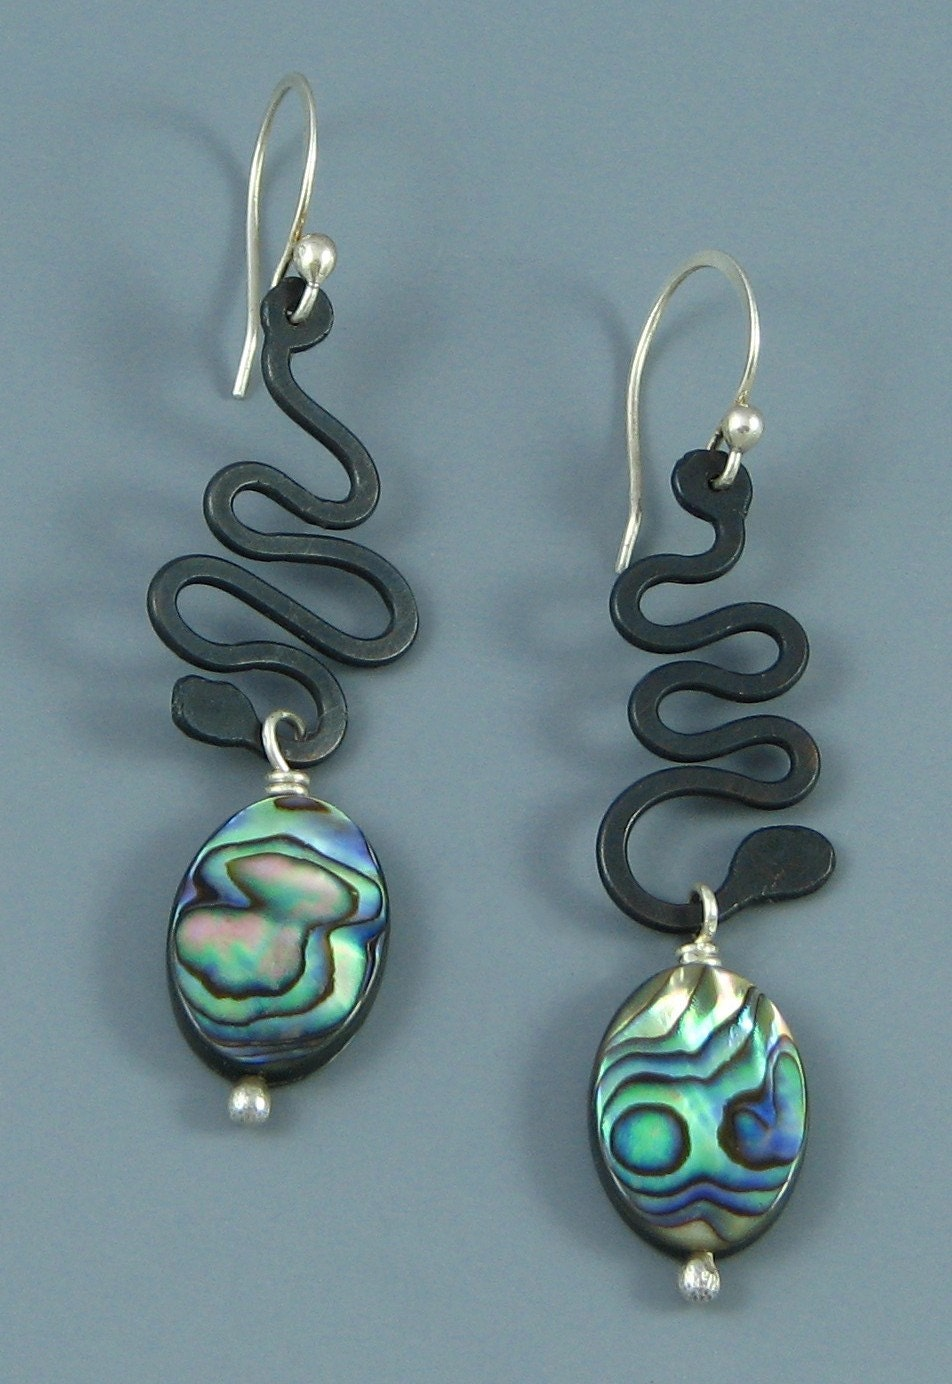 Handmade Abalone and Oxidized Squiggle Earrings